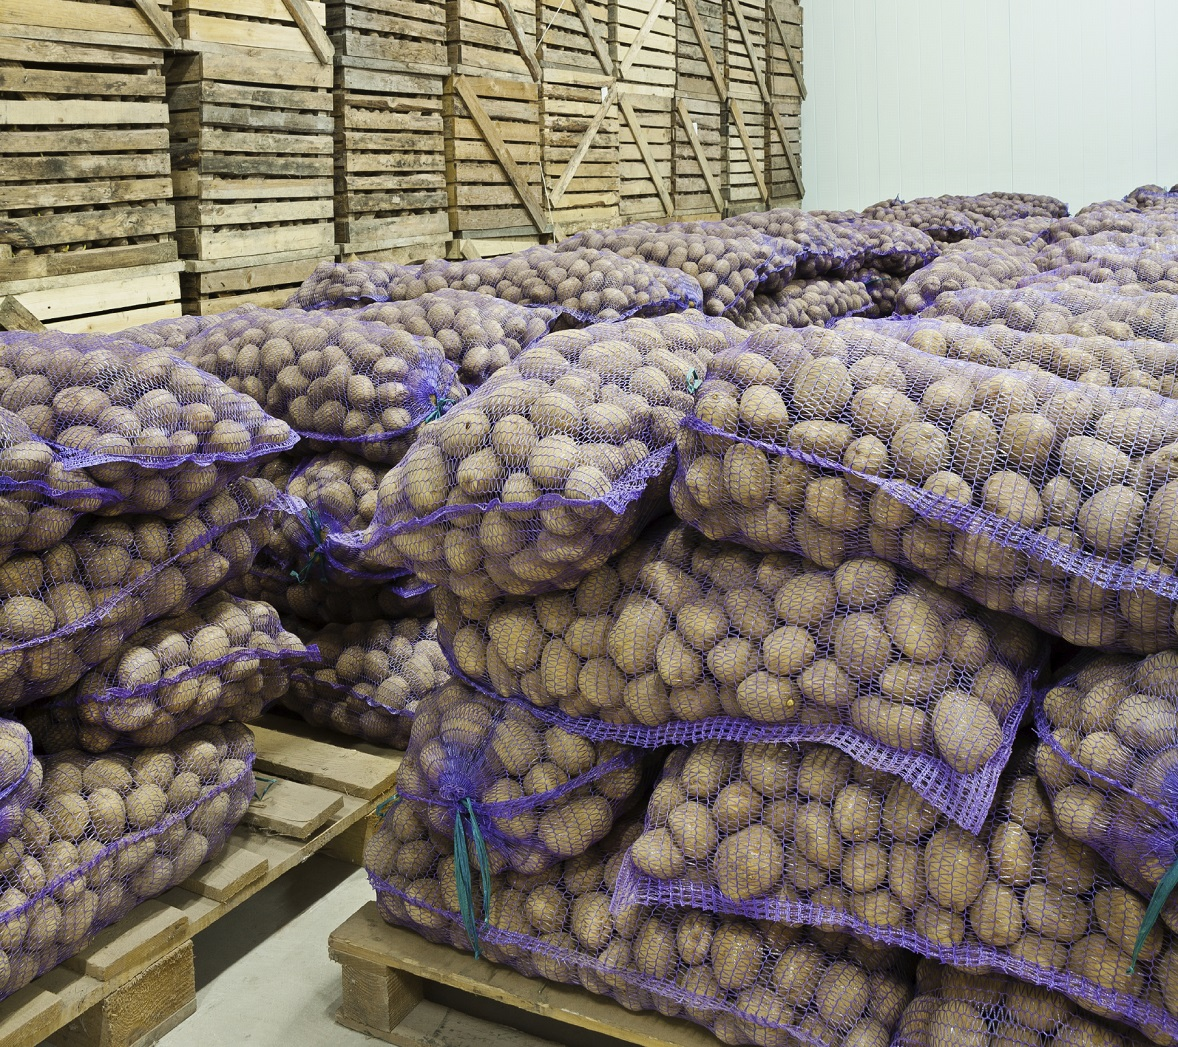 Bespoke heating hire helps UK's largest supplier of potatoes preserve produce